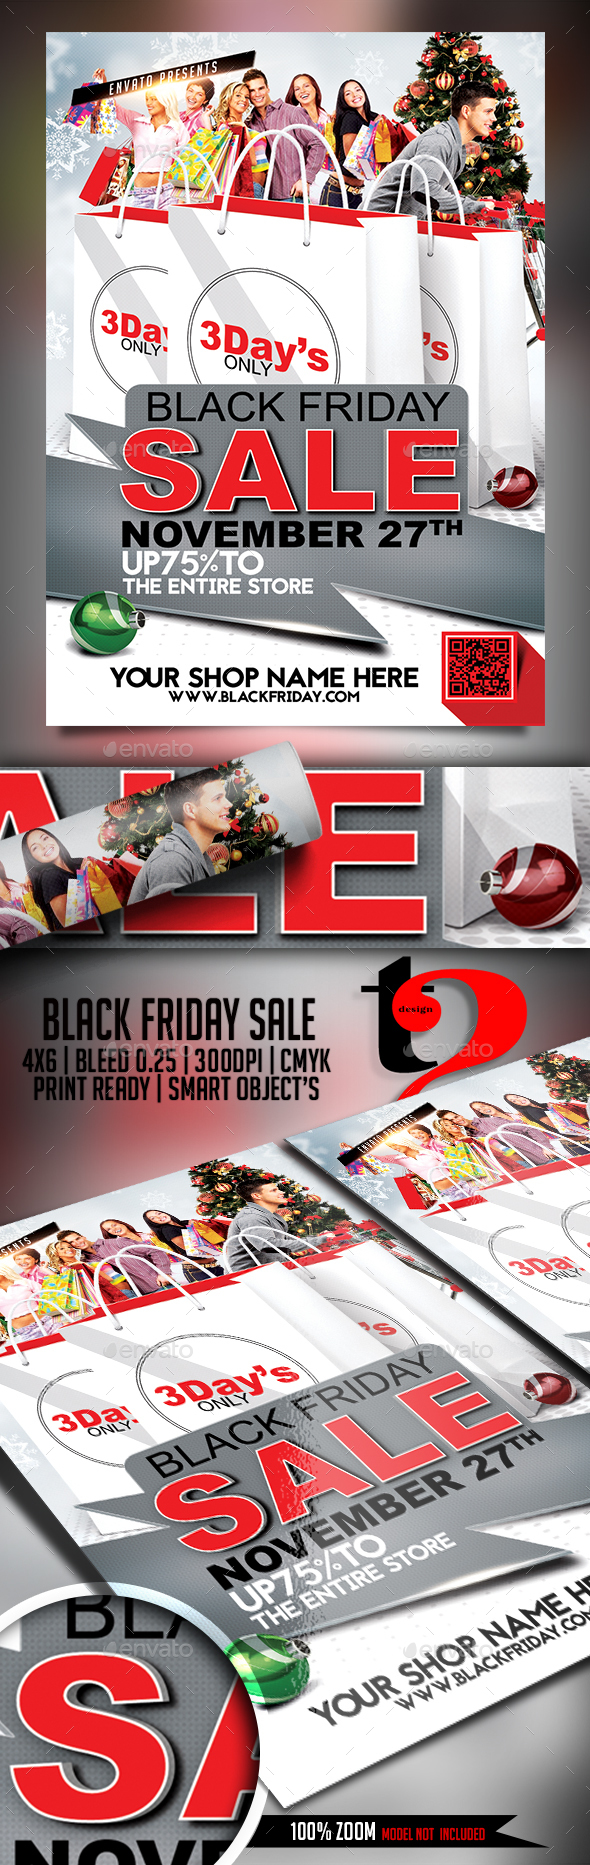 Black Friday Flyer Template - Flyers Print Templates